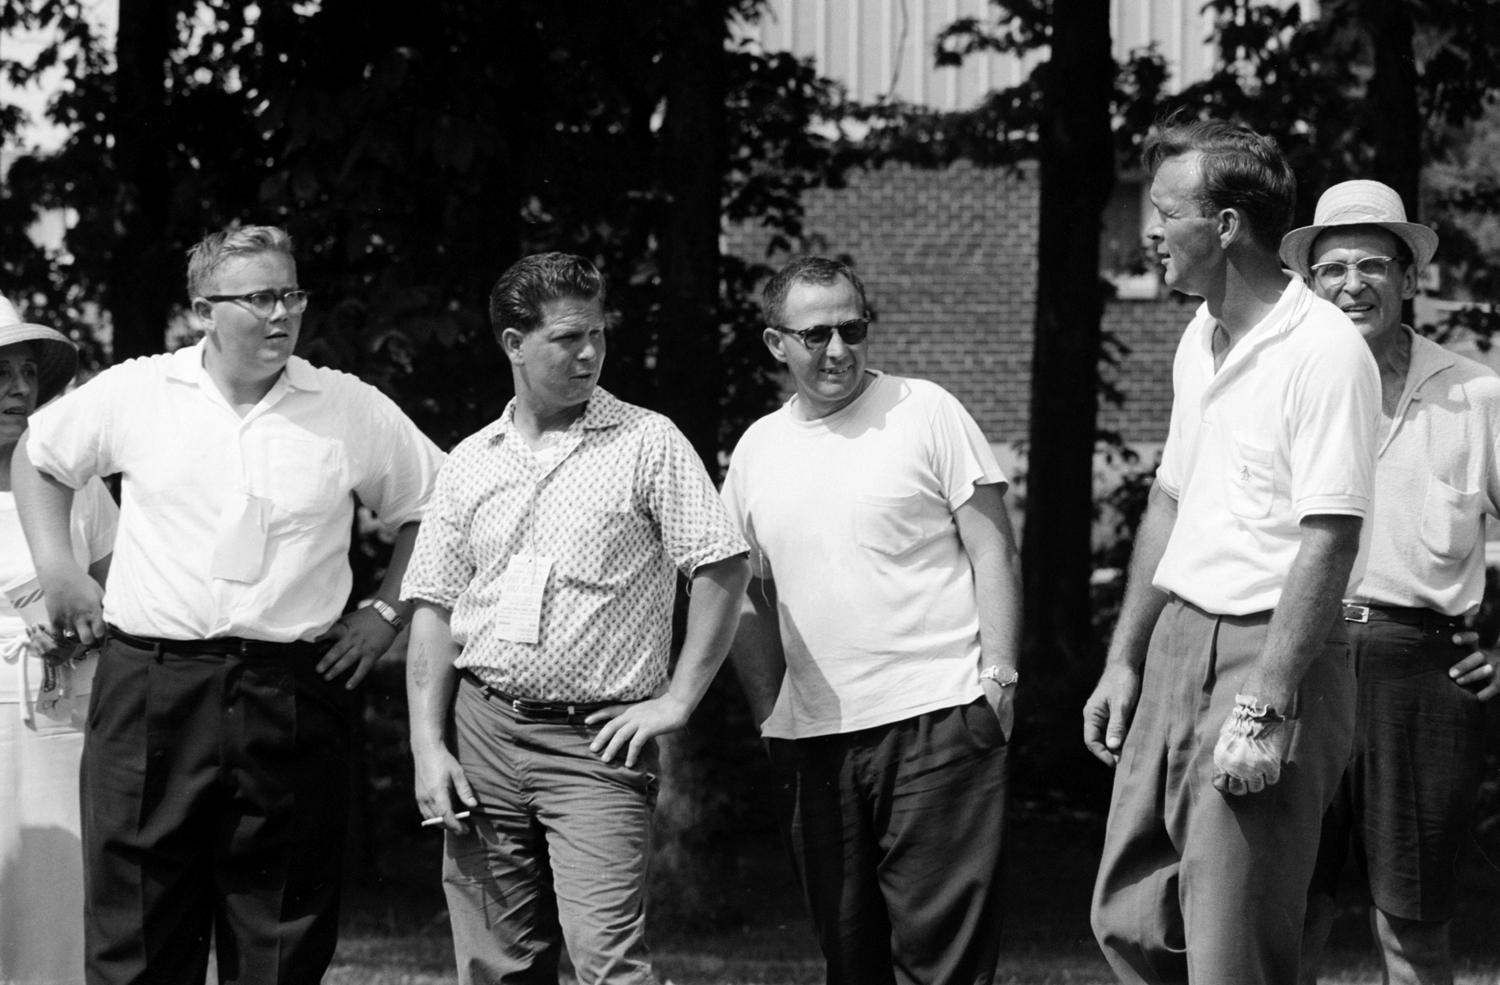 Arnold Palmer and his admiring fans, 1962.